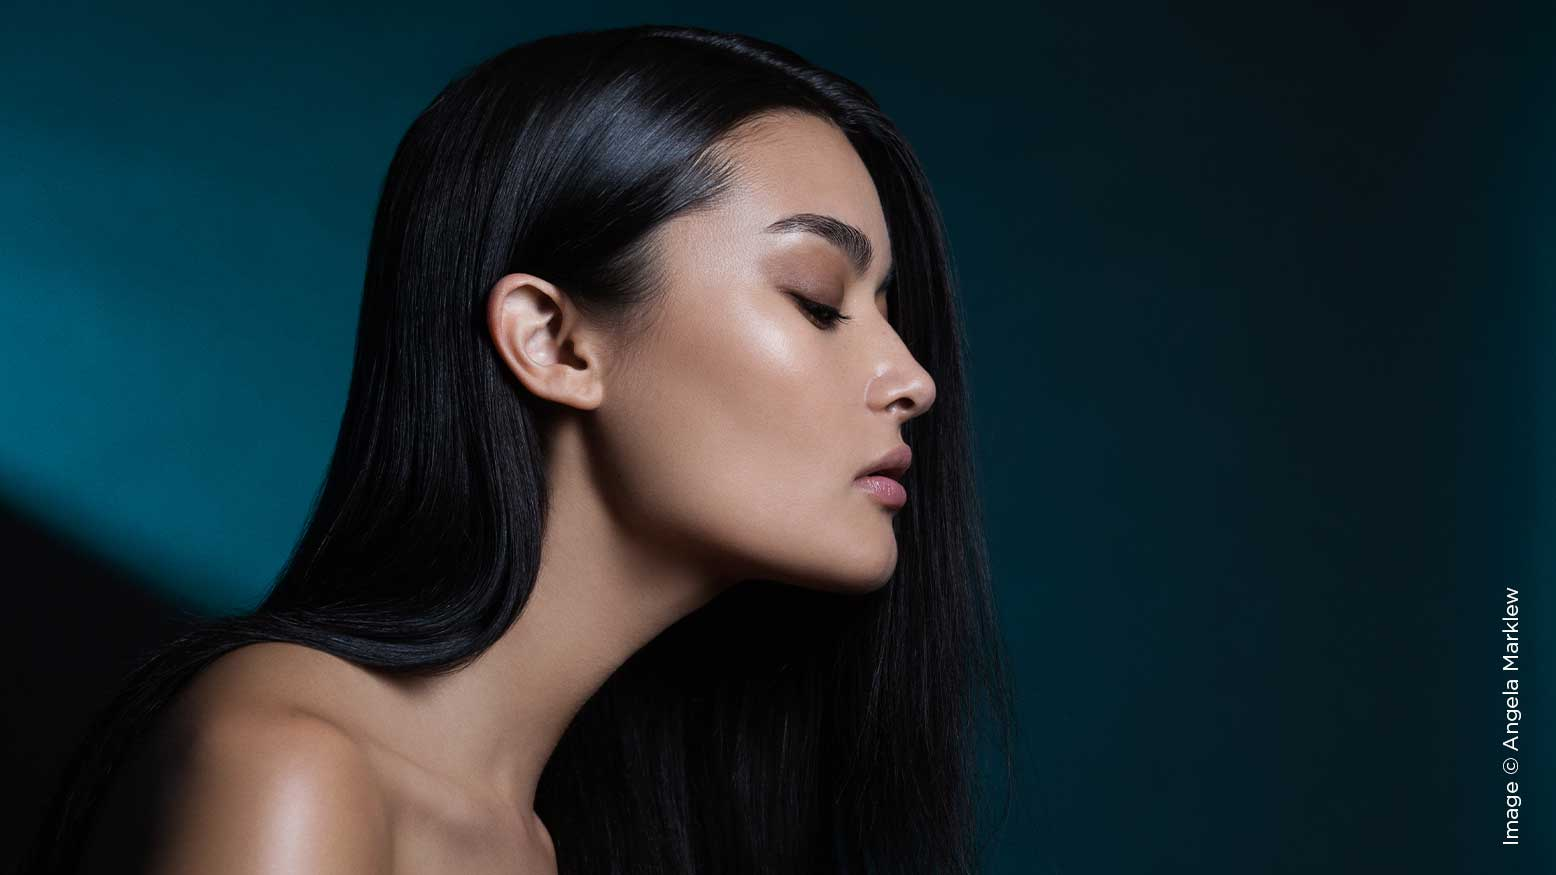 Using Gels to Enhance Your Portrait Photography